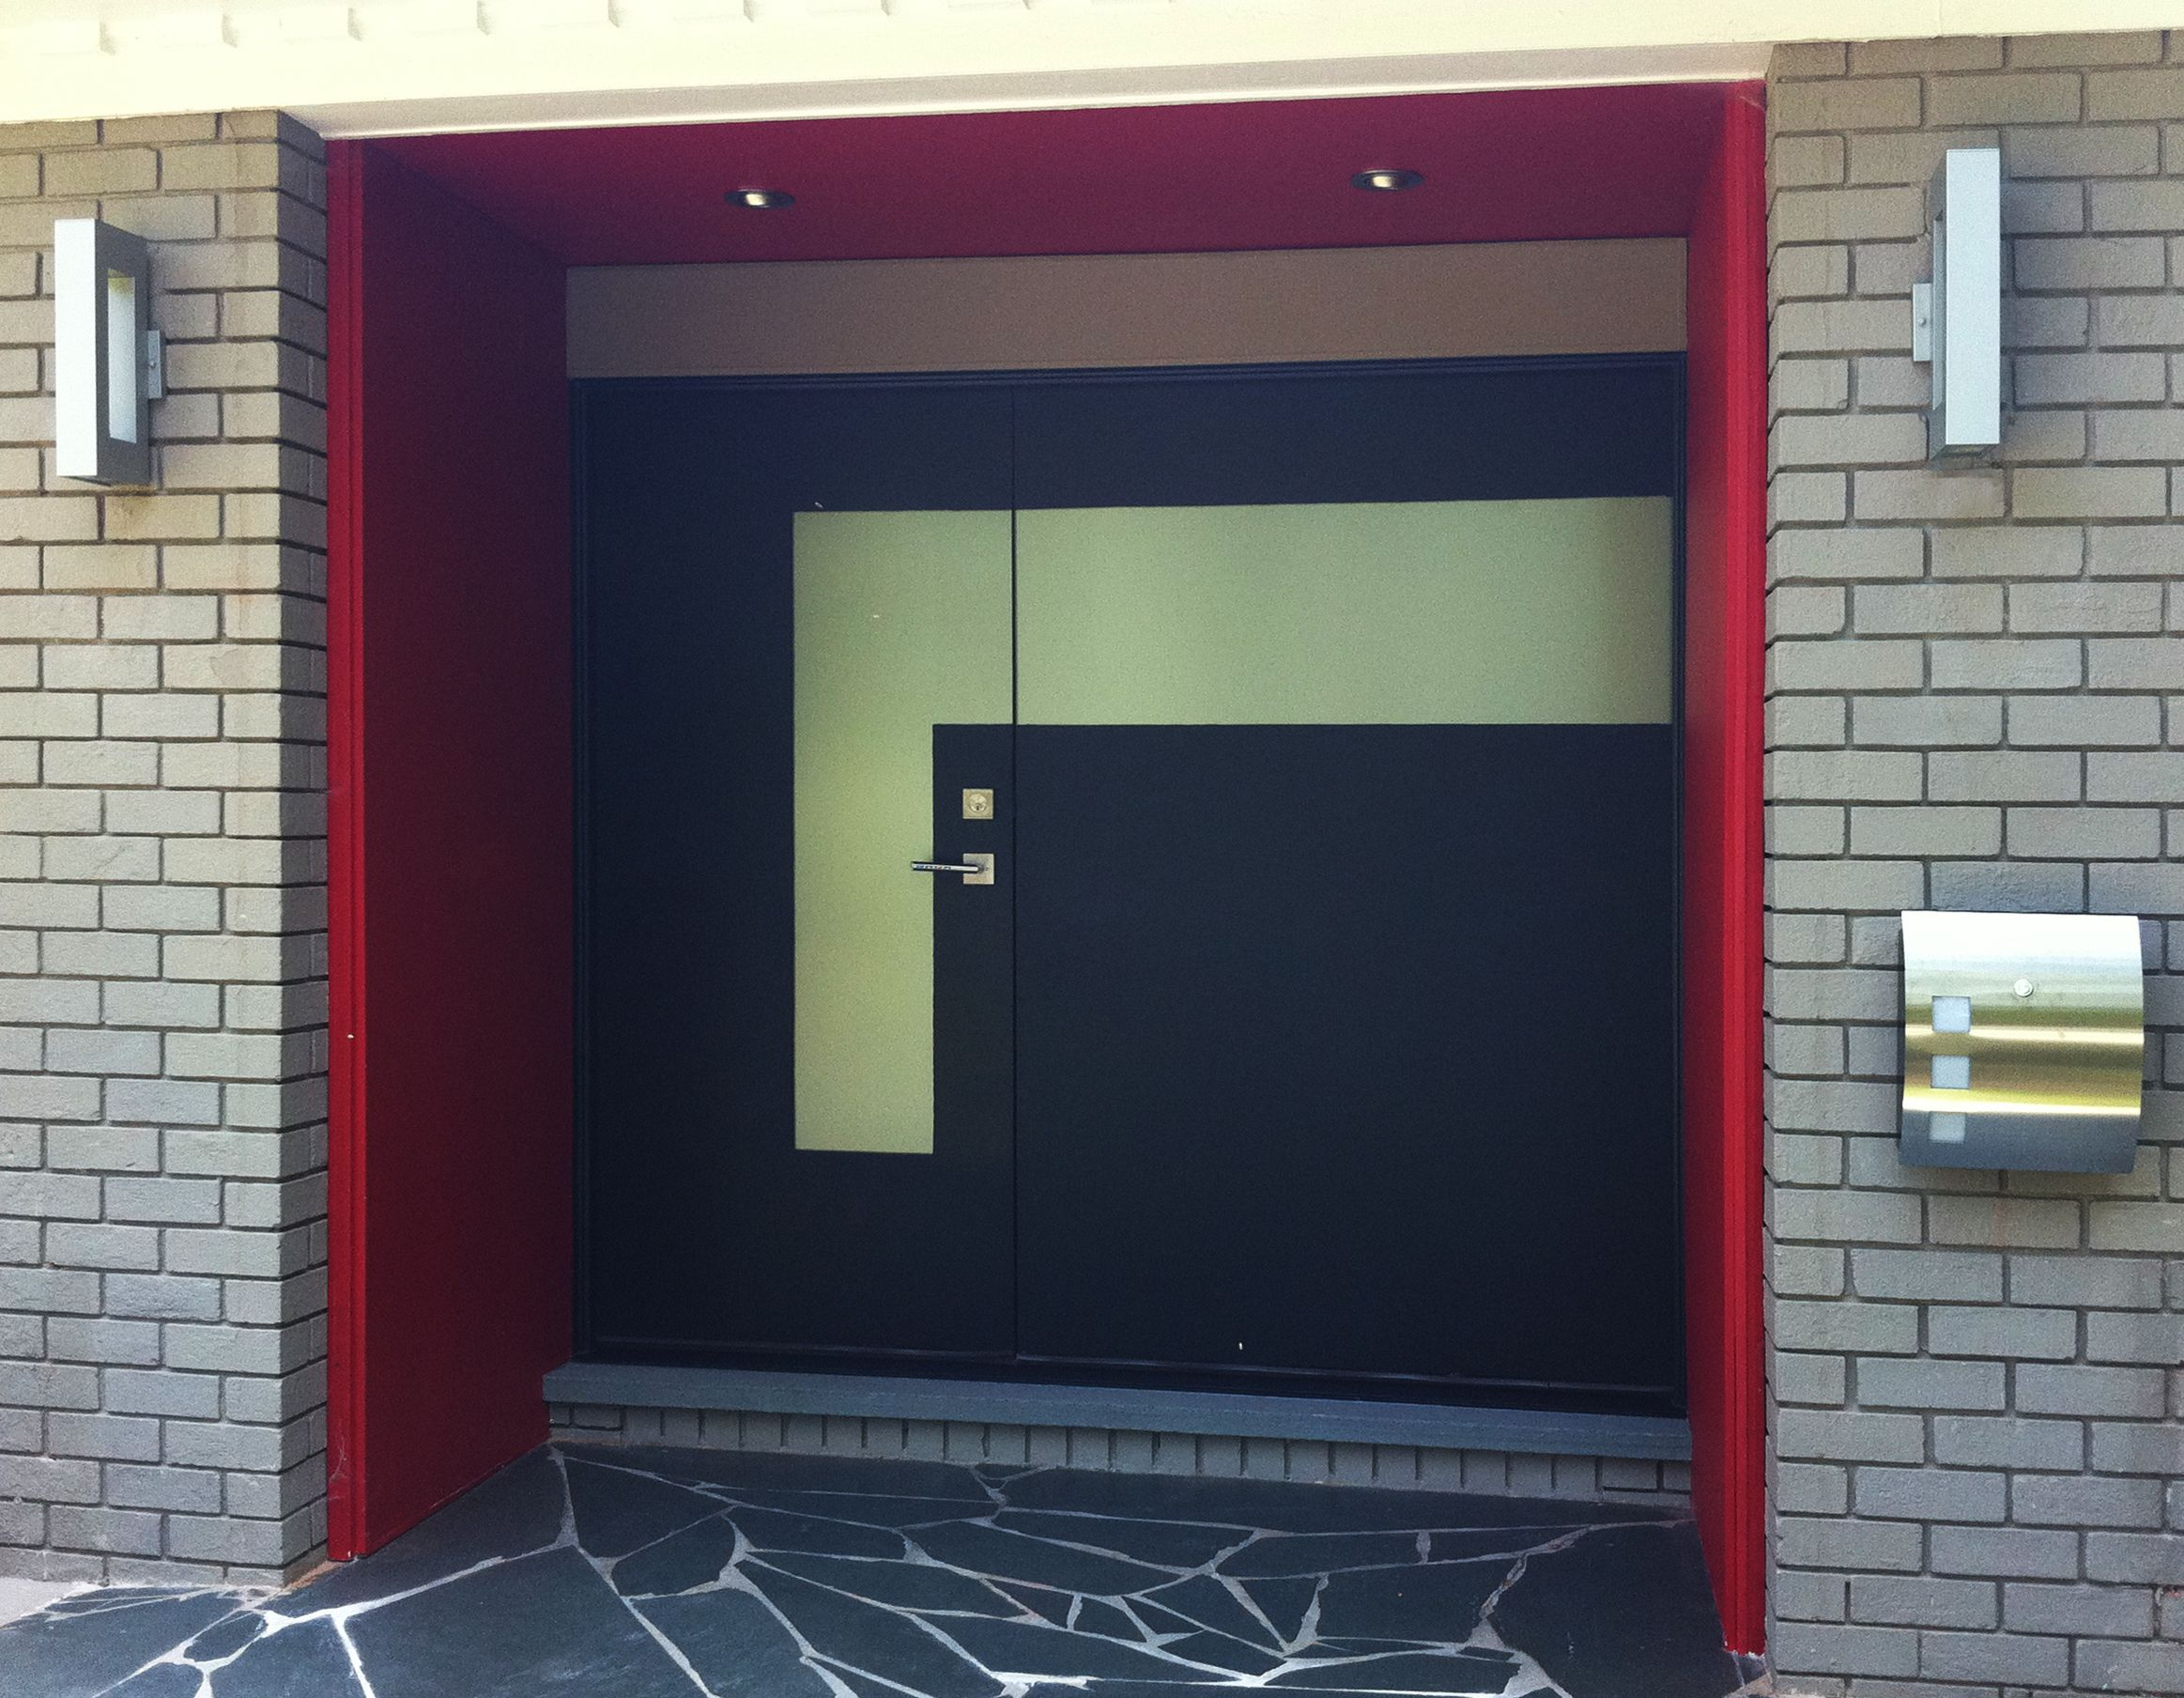 Home design attractive black custom modern front doors with red very popular black custom modern front door with stainless steel lock handle entrance door and chrome accesories pattern inside as well as red acrylic rubansaba